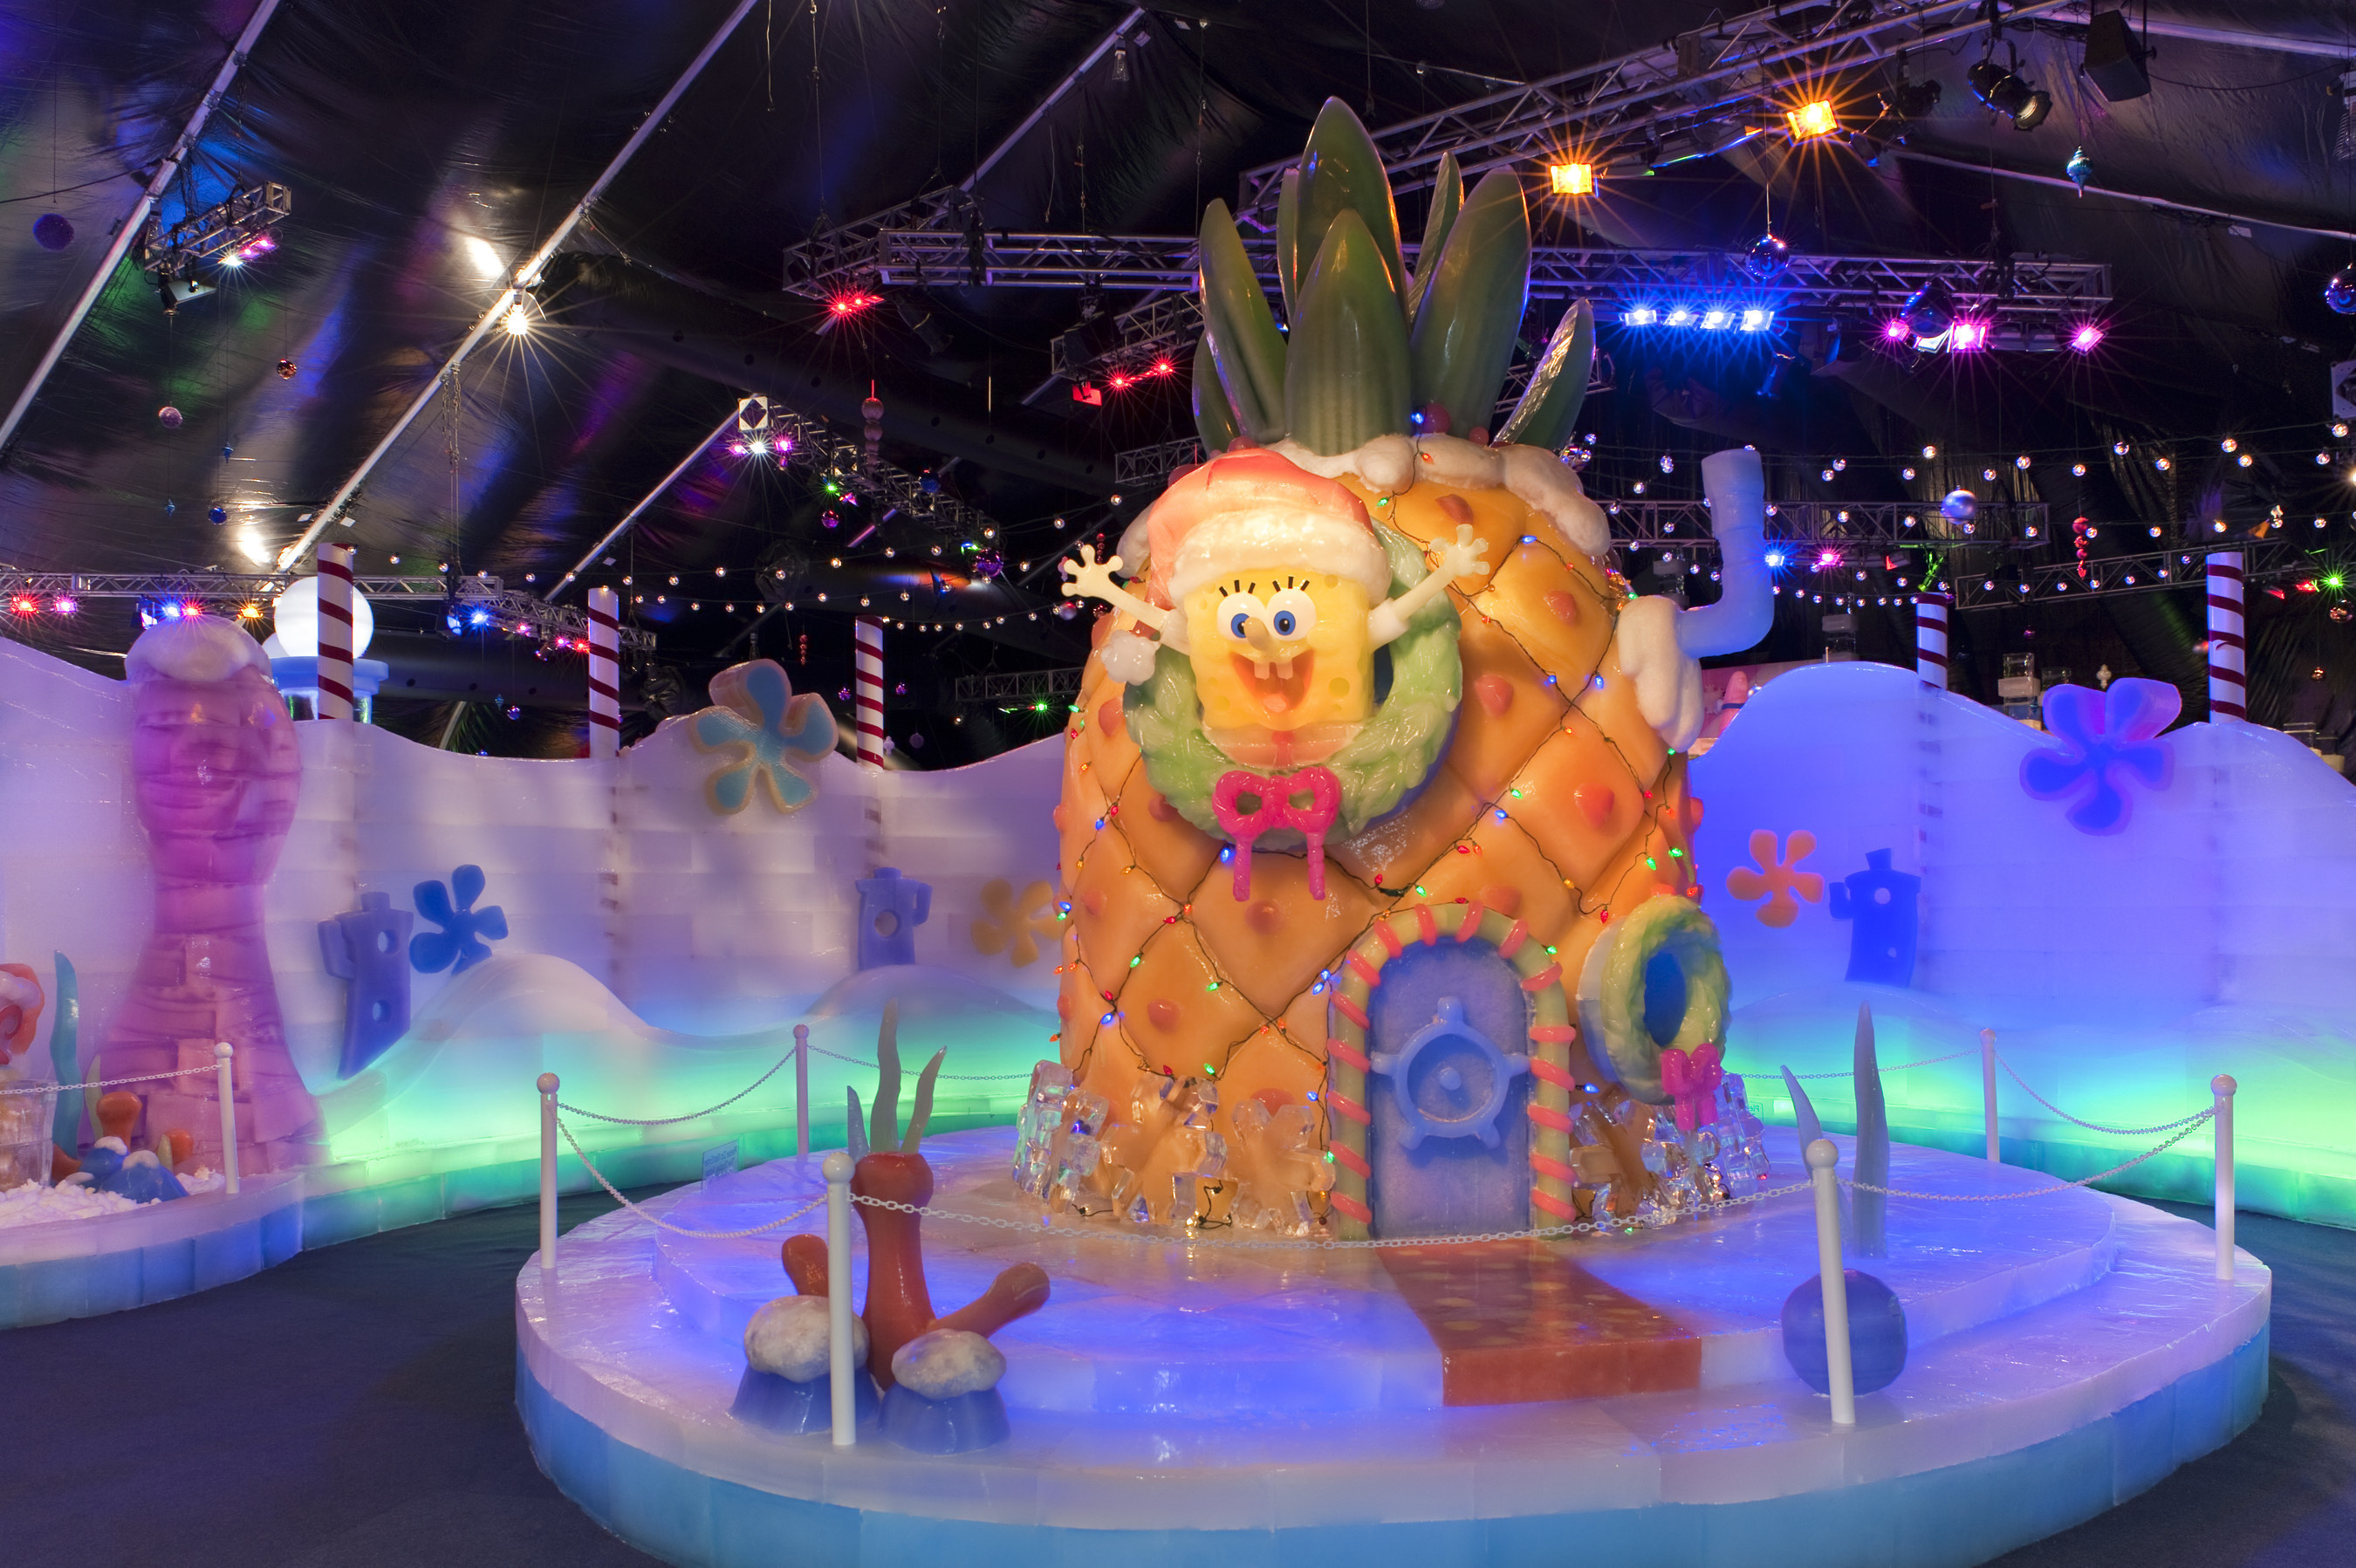 The new ICE LAND Ice Sculptures with SpongeBob SquarePants is one of many holiday attractions that Moody Gardens offers for visitors looking for a fun family getaway this holiday getaway to Galveston Island in Texas. Inspired by the Snow & Ice Festival in Harbin, China; guests will enjoy over 50 towering ice sculptures as the ideal complement to the popular Festival of Lights, holiday 3D and 4D films, Arctic Ice Slide, Ice skating, hotel, spa and more.